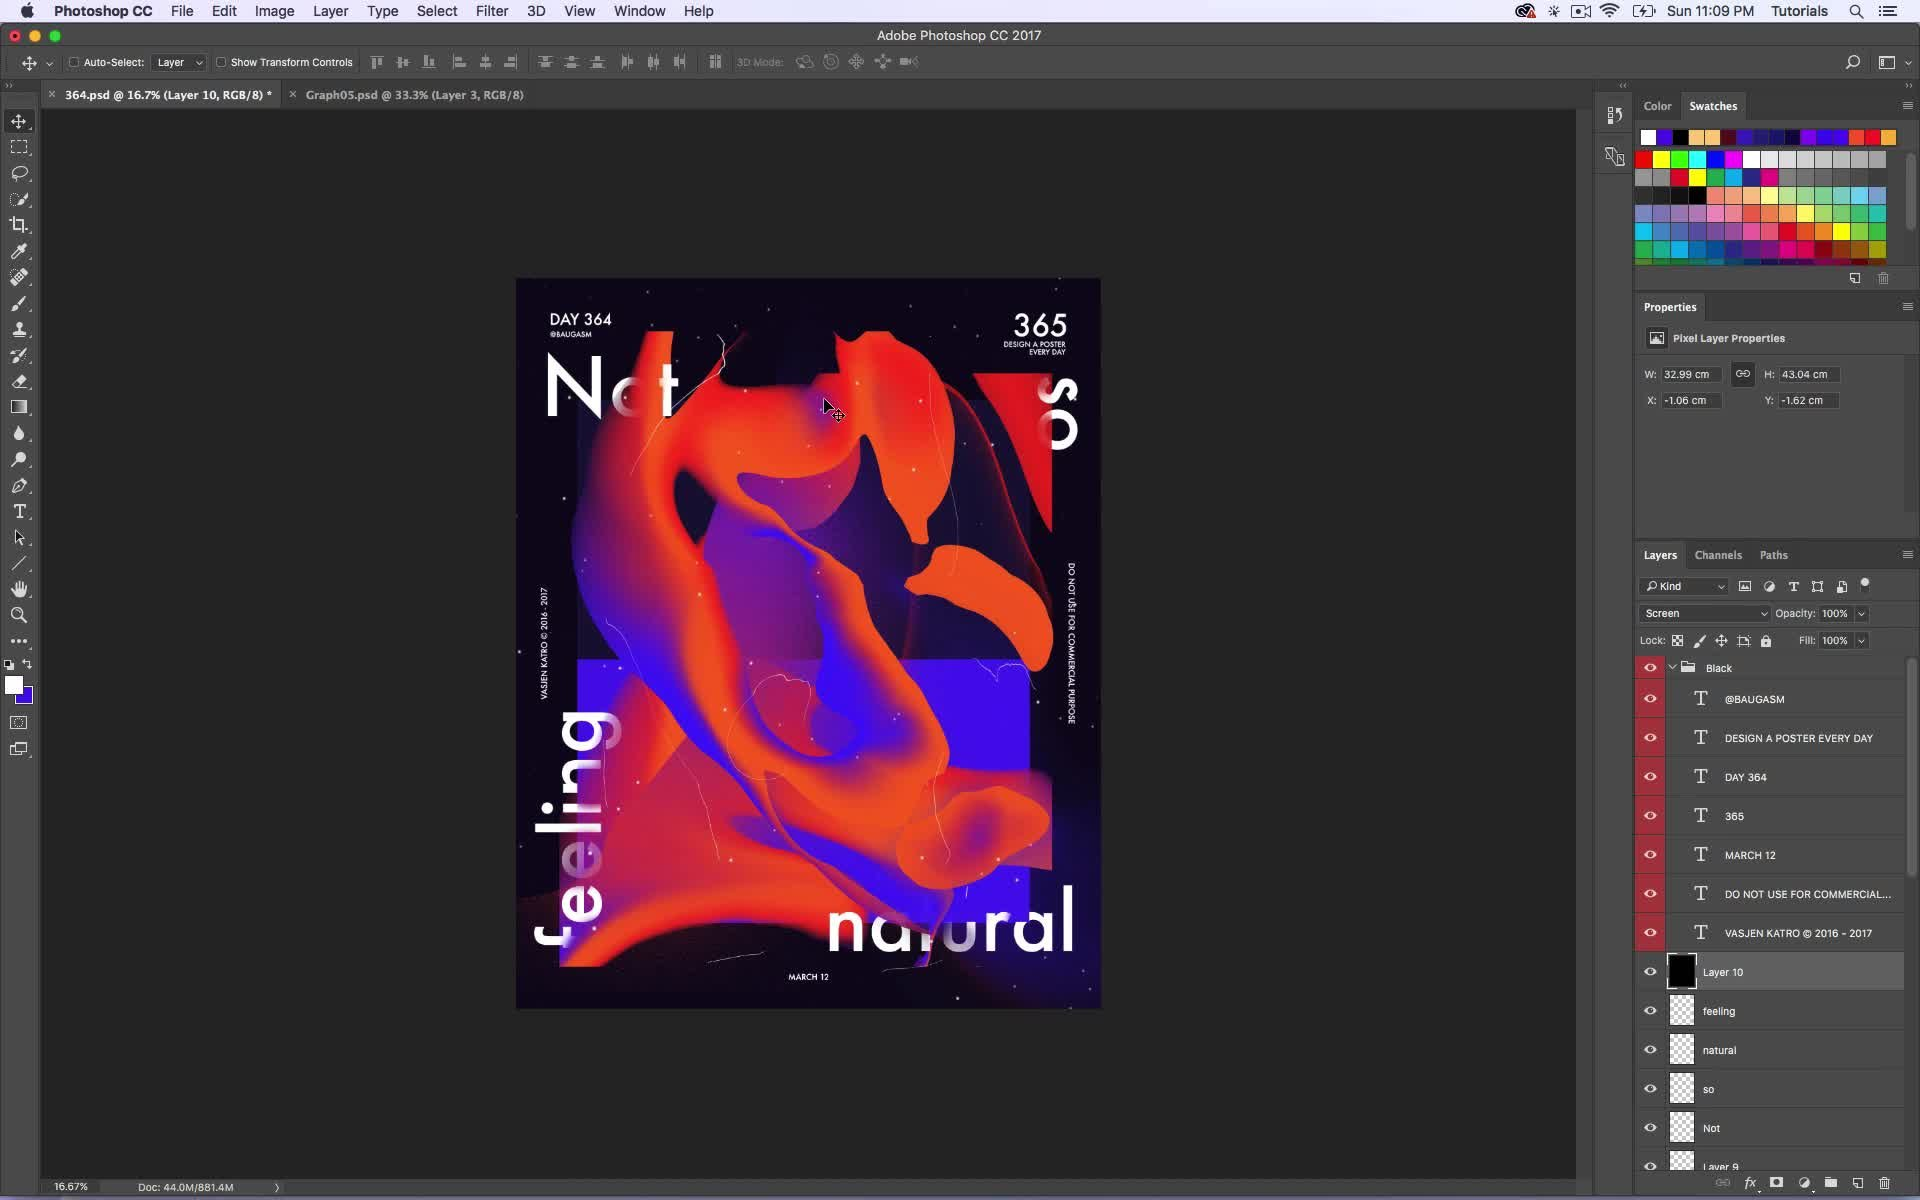 E poster design software - Baugasm Series 7 Design An Abstract Poster With Liquid Effect In Photoshop Vasjen Katro Skillshare